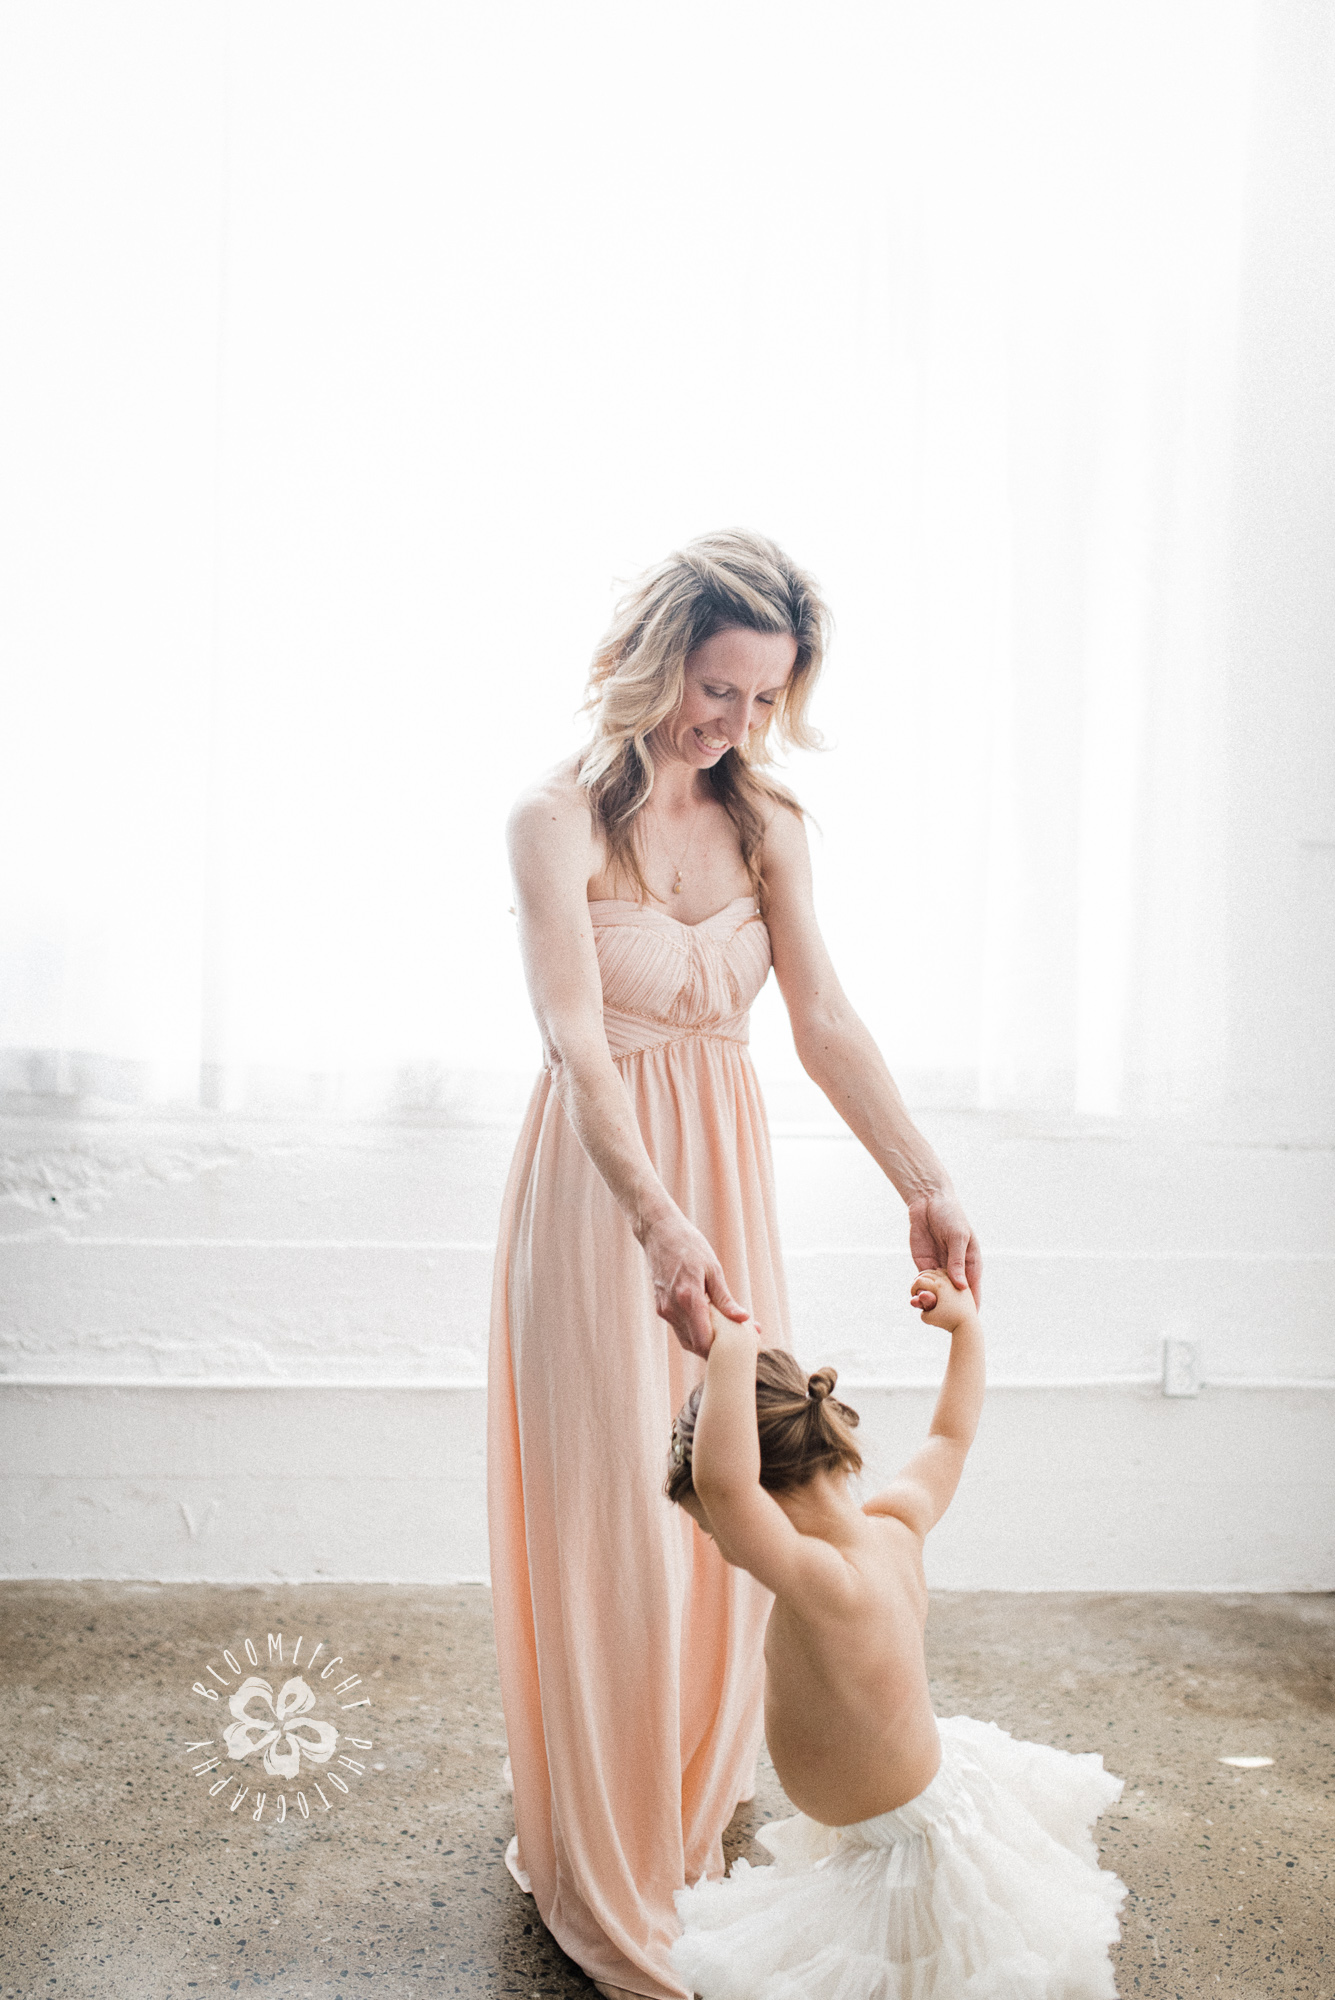 mom-baby-dance-photo-studio-Toronto-lifestyle-photographer.JPG